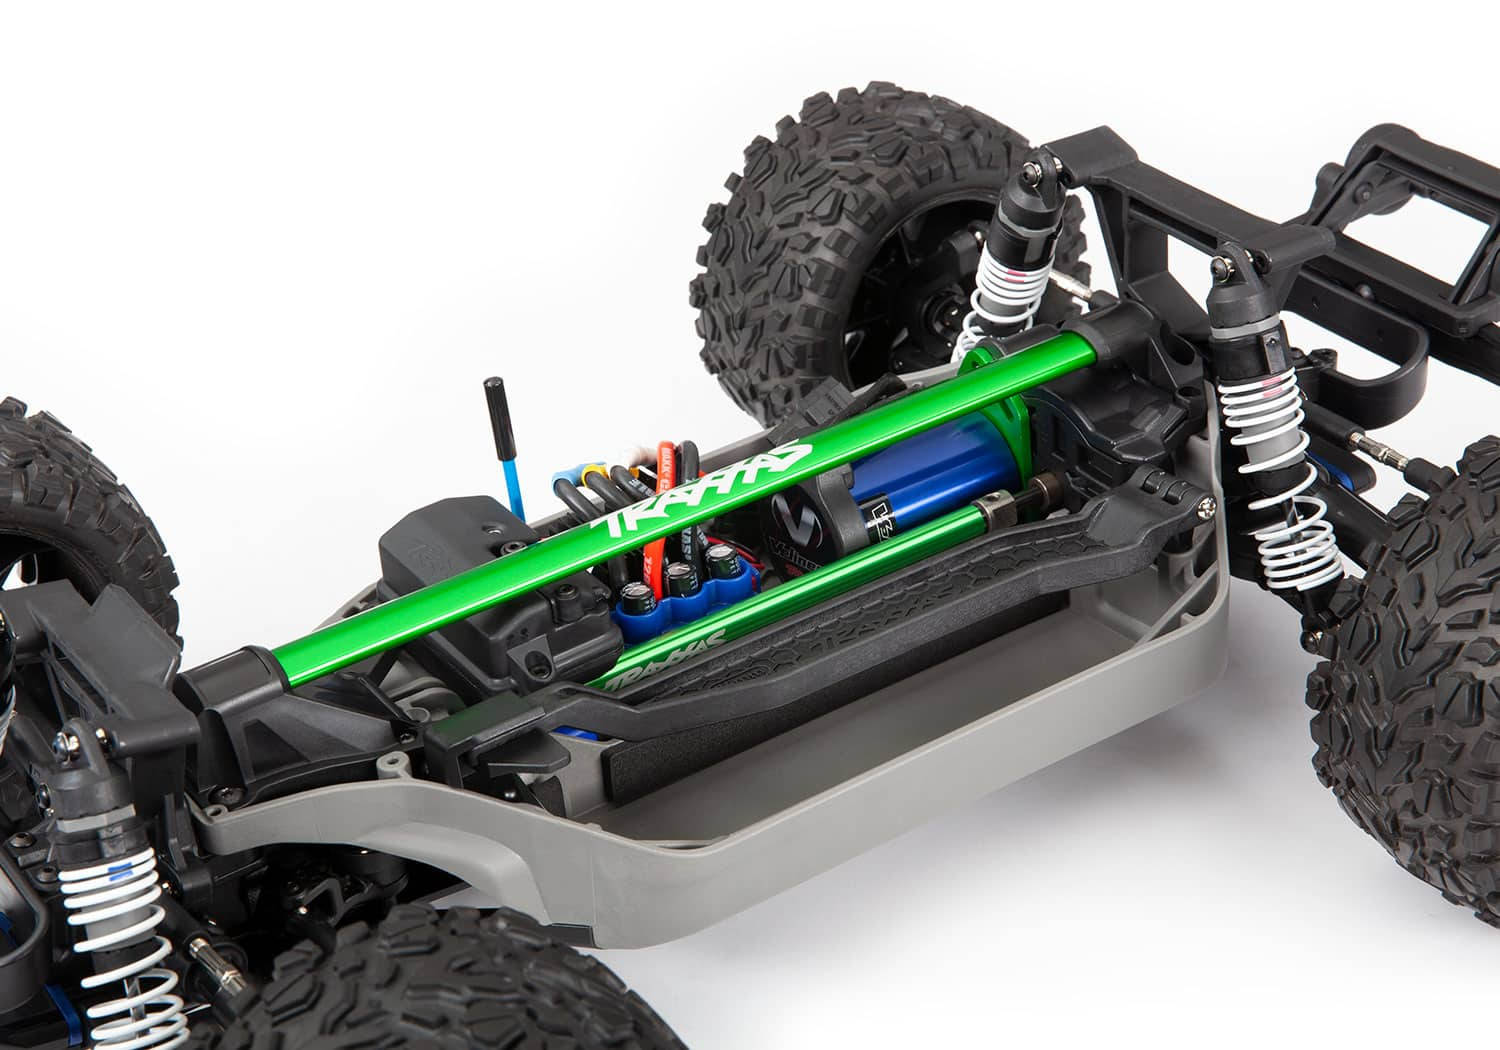 Traxxas Heavy-Duty Chassis Brace for the Slash 4×4 and Rustler 4×4